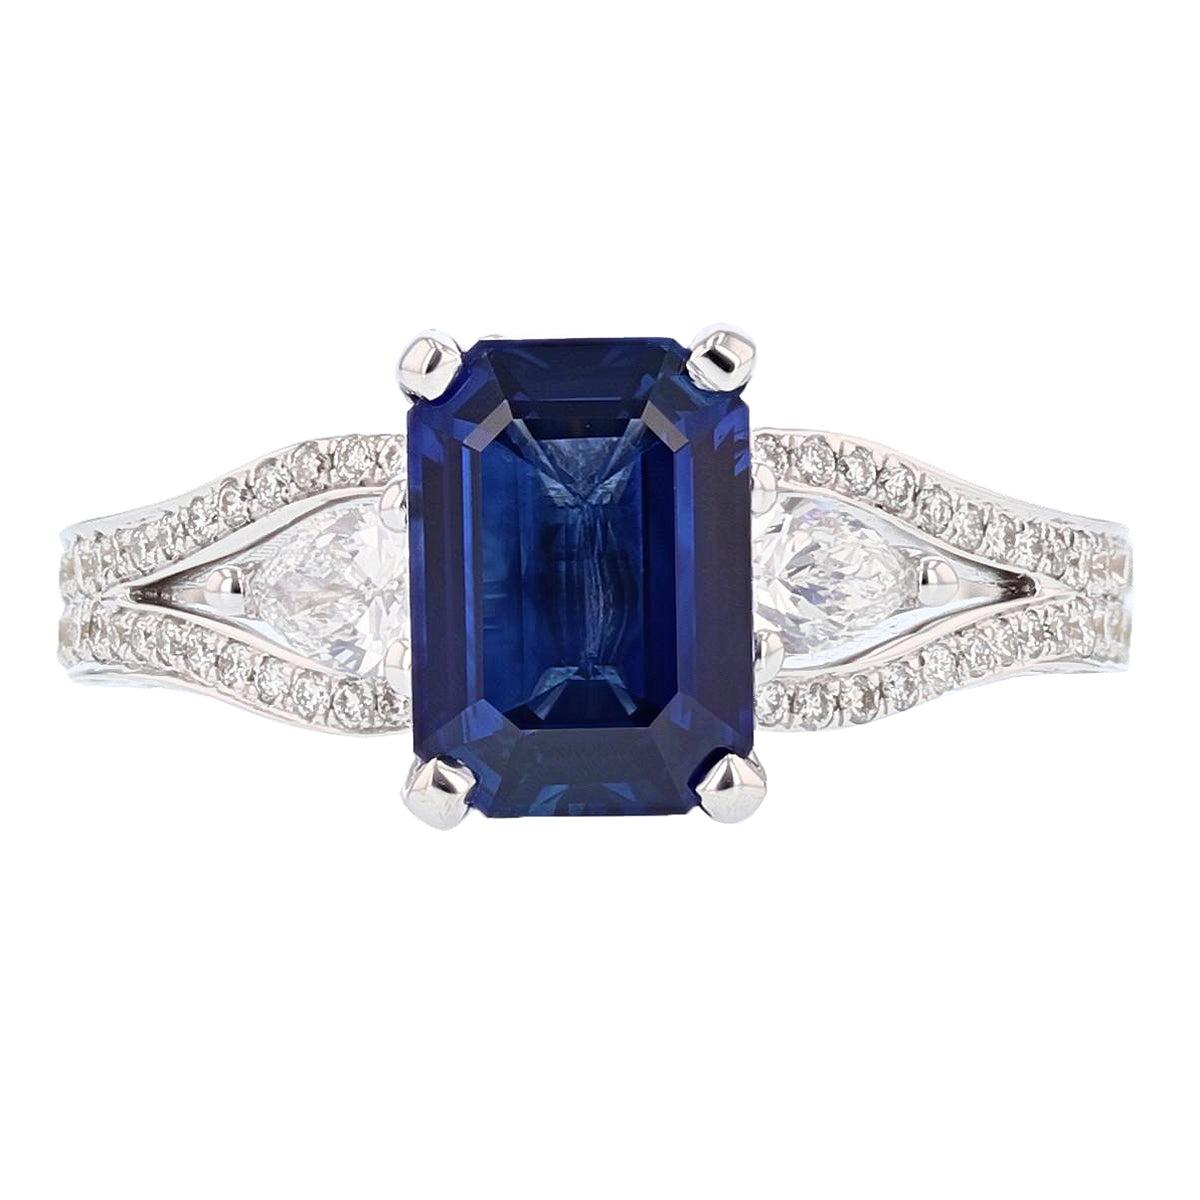 18K White Gold 2.20 Carat Emerald Cut Sapphire and Diamond Ring